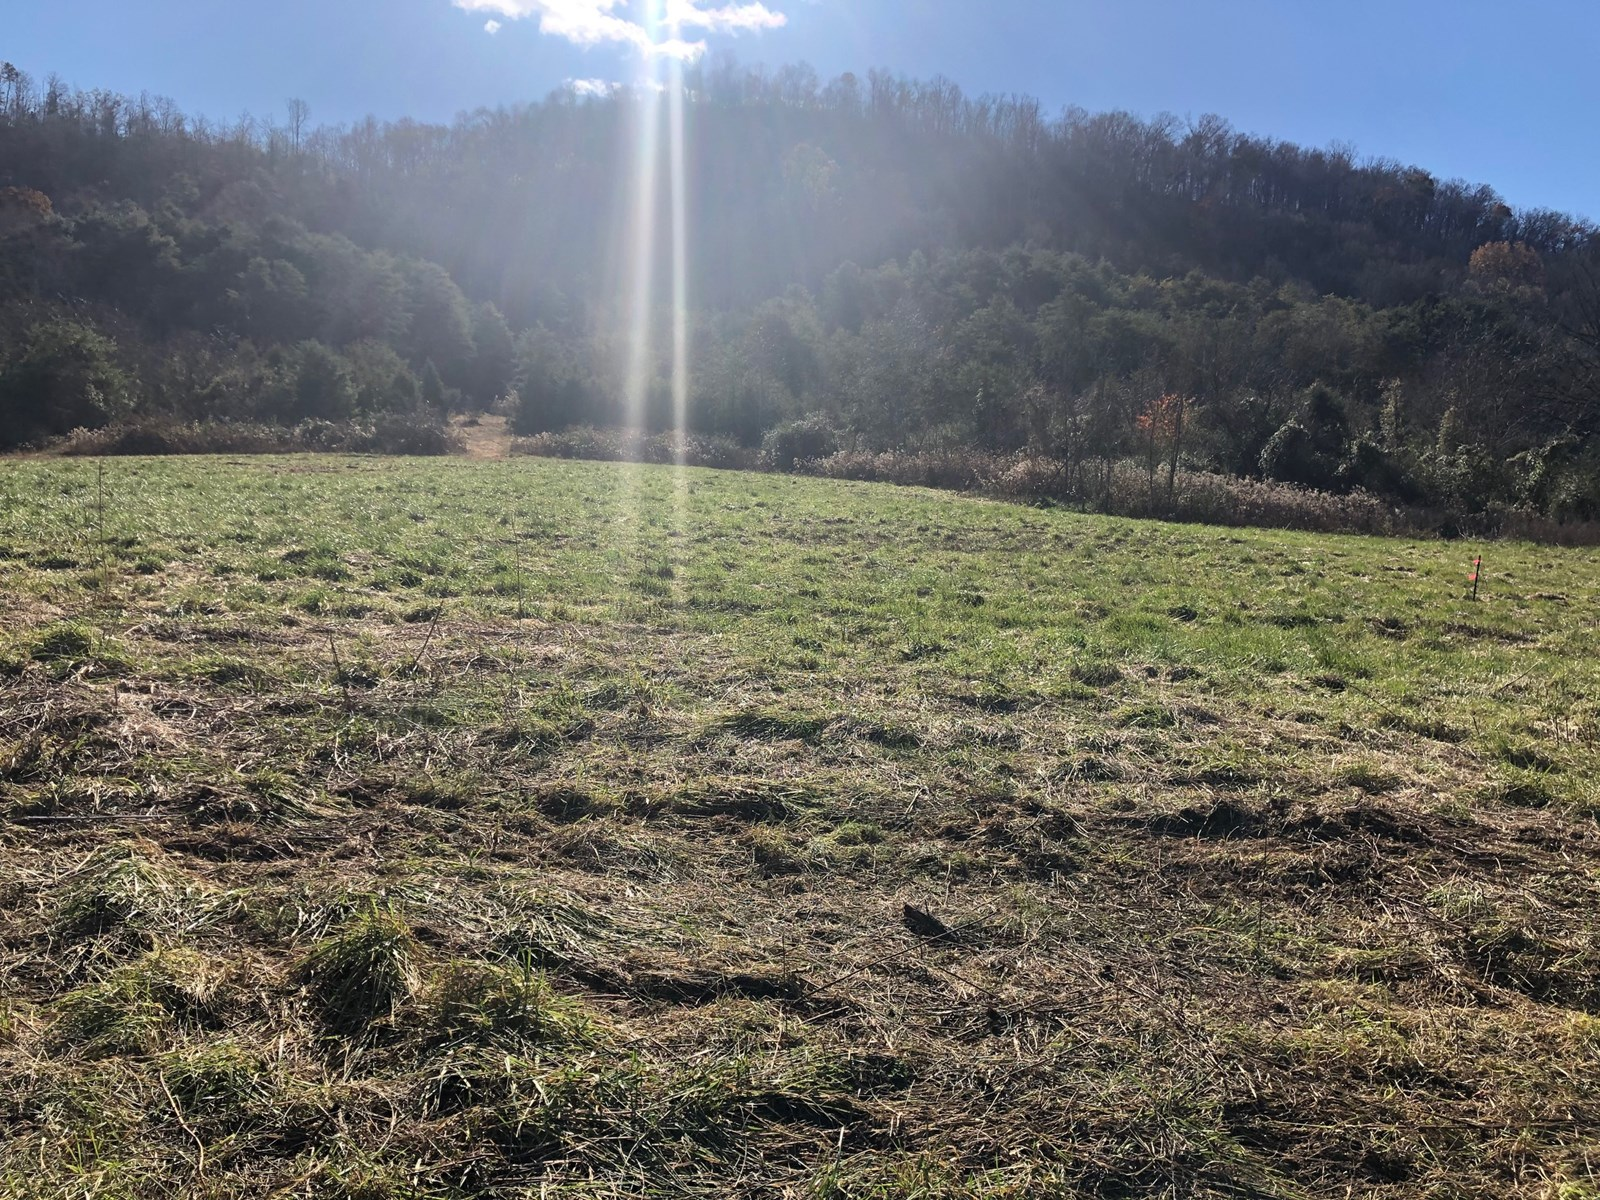 5 Acres in Rogersville, TN For Sale